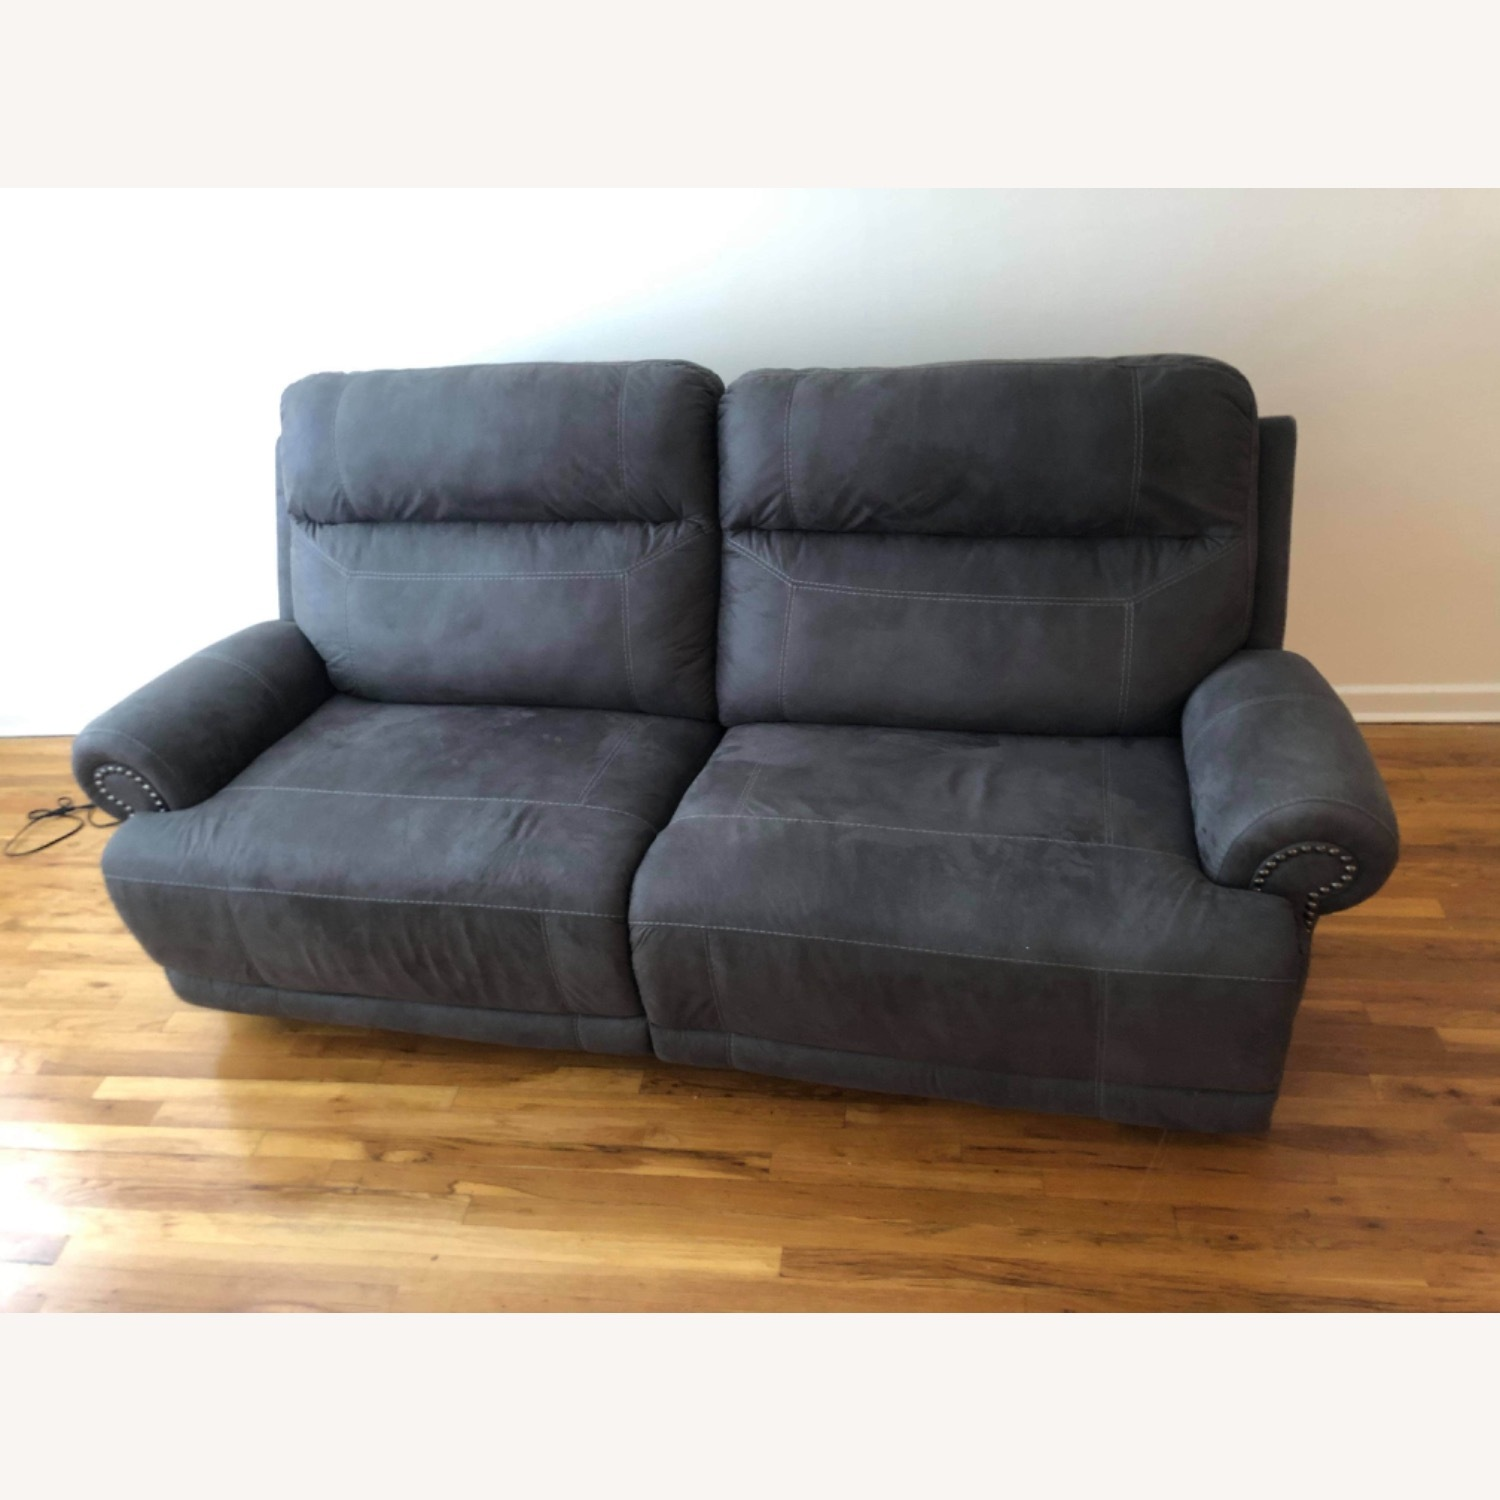 Wanek Furniture Company Electric Recliner Sofa - image-1